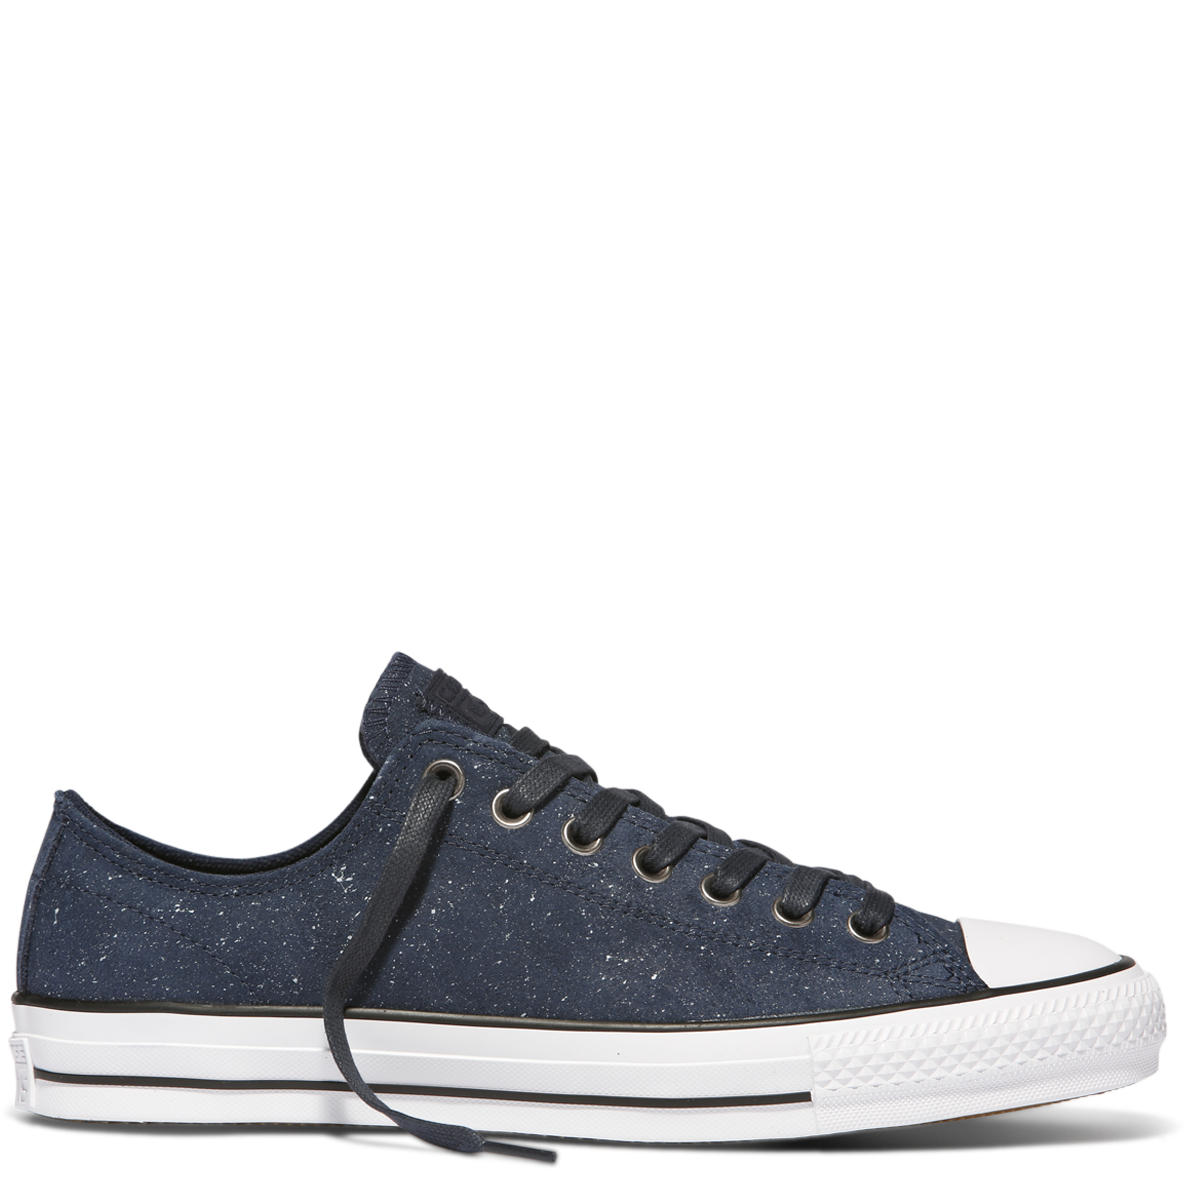 Converse CONS CTAS Pro Peppered Suede Low Top Men's